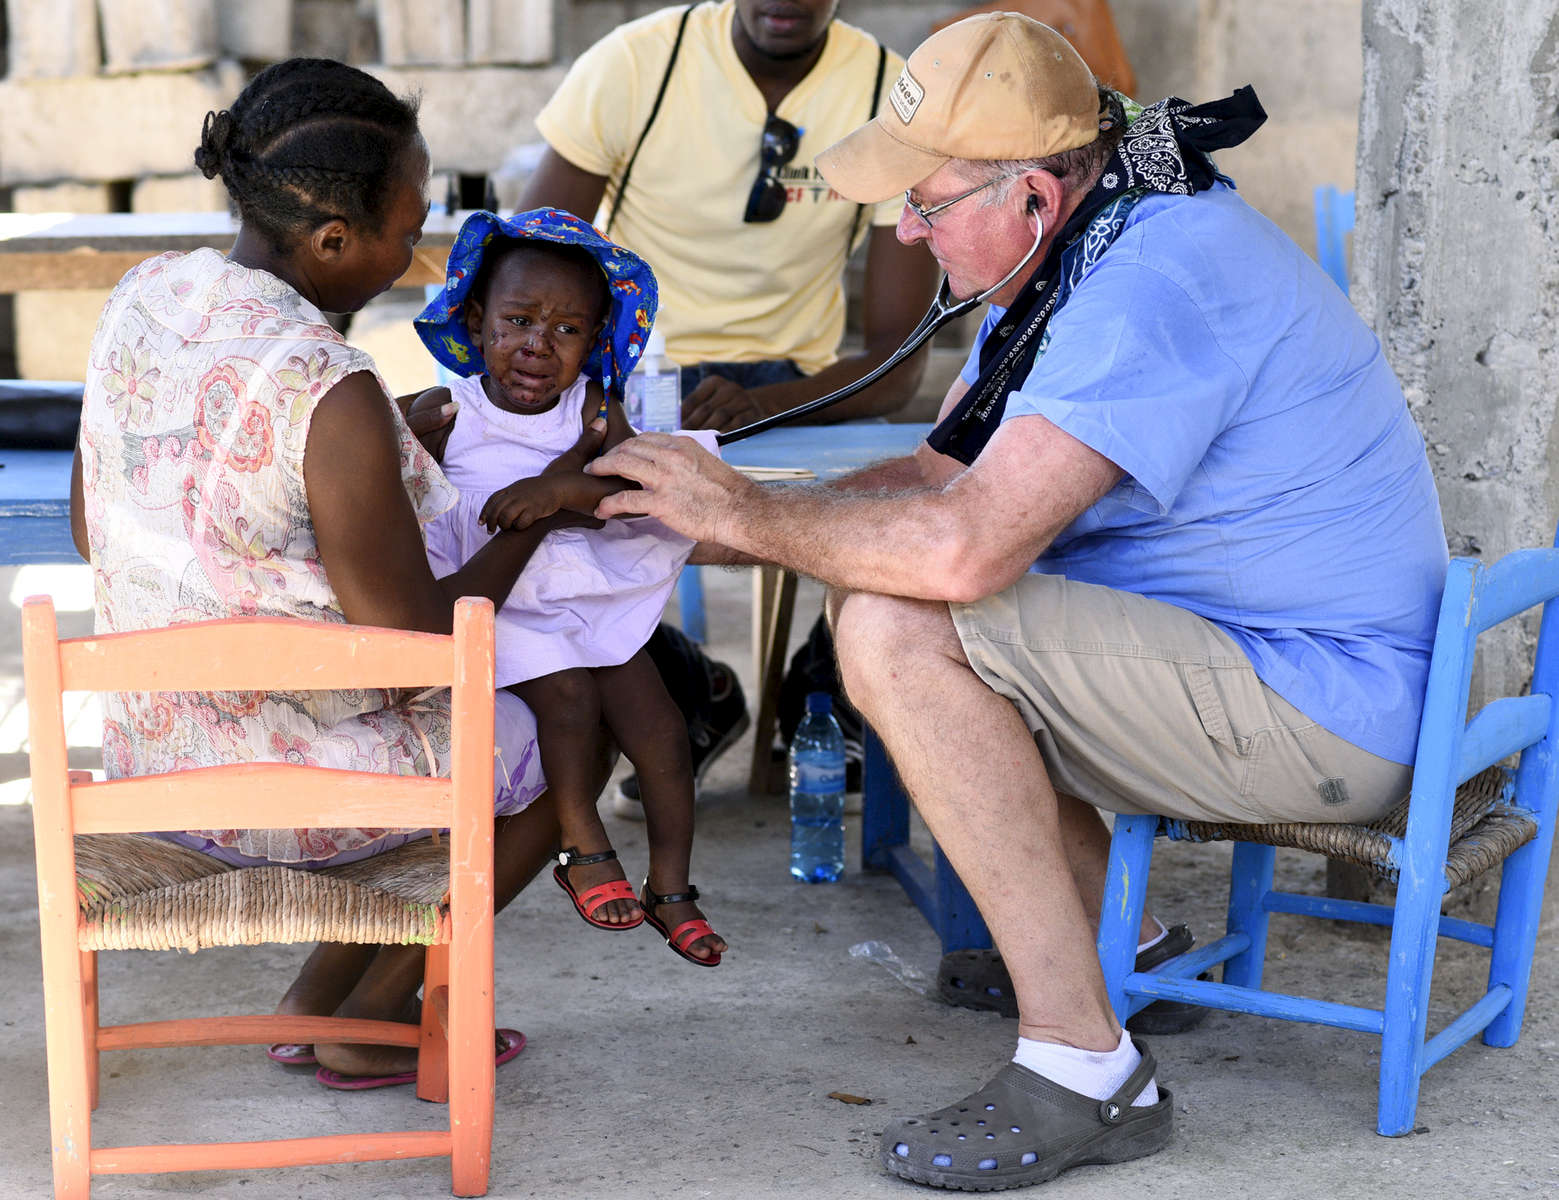 Dr. John Harrington of Gardner performs an exam on a young girl at the Adventist Church in Ducis, Haiti on Wednesday, November 2, 2016.